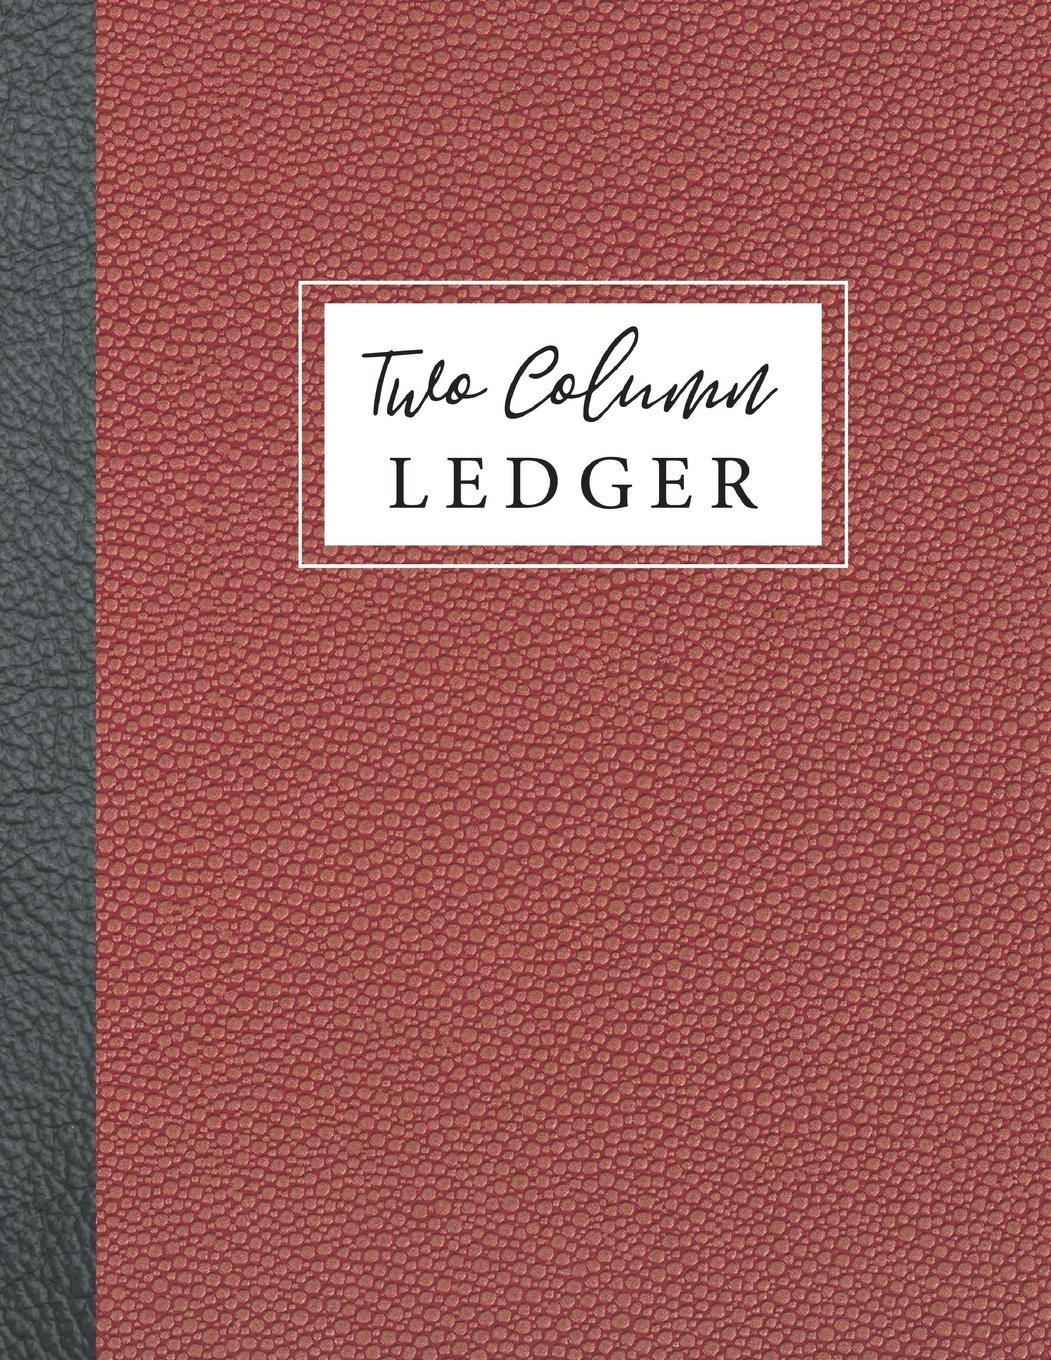 Two Column Ledger: Accounting Journal Entry Book, 2 Column Accounting Ledger, Expenses Debits, Bookkeeping Ledger Record Book, Ledger Notebook, ... Business Finance Accounting) (Volume 4) pdf epub